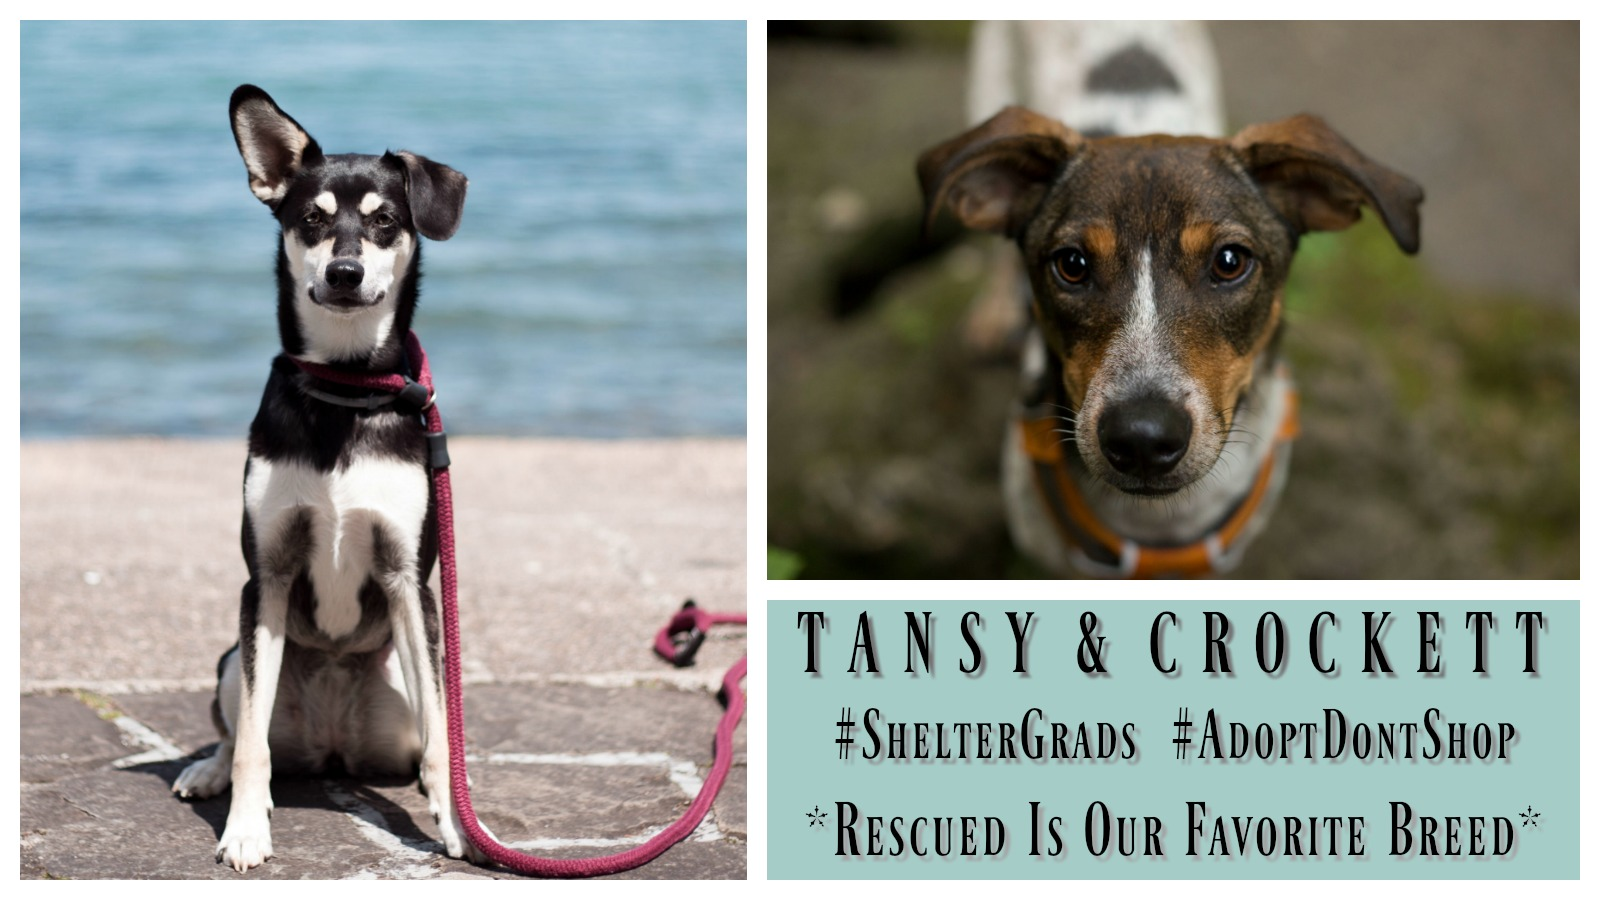 tansy-and-crockett-featured